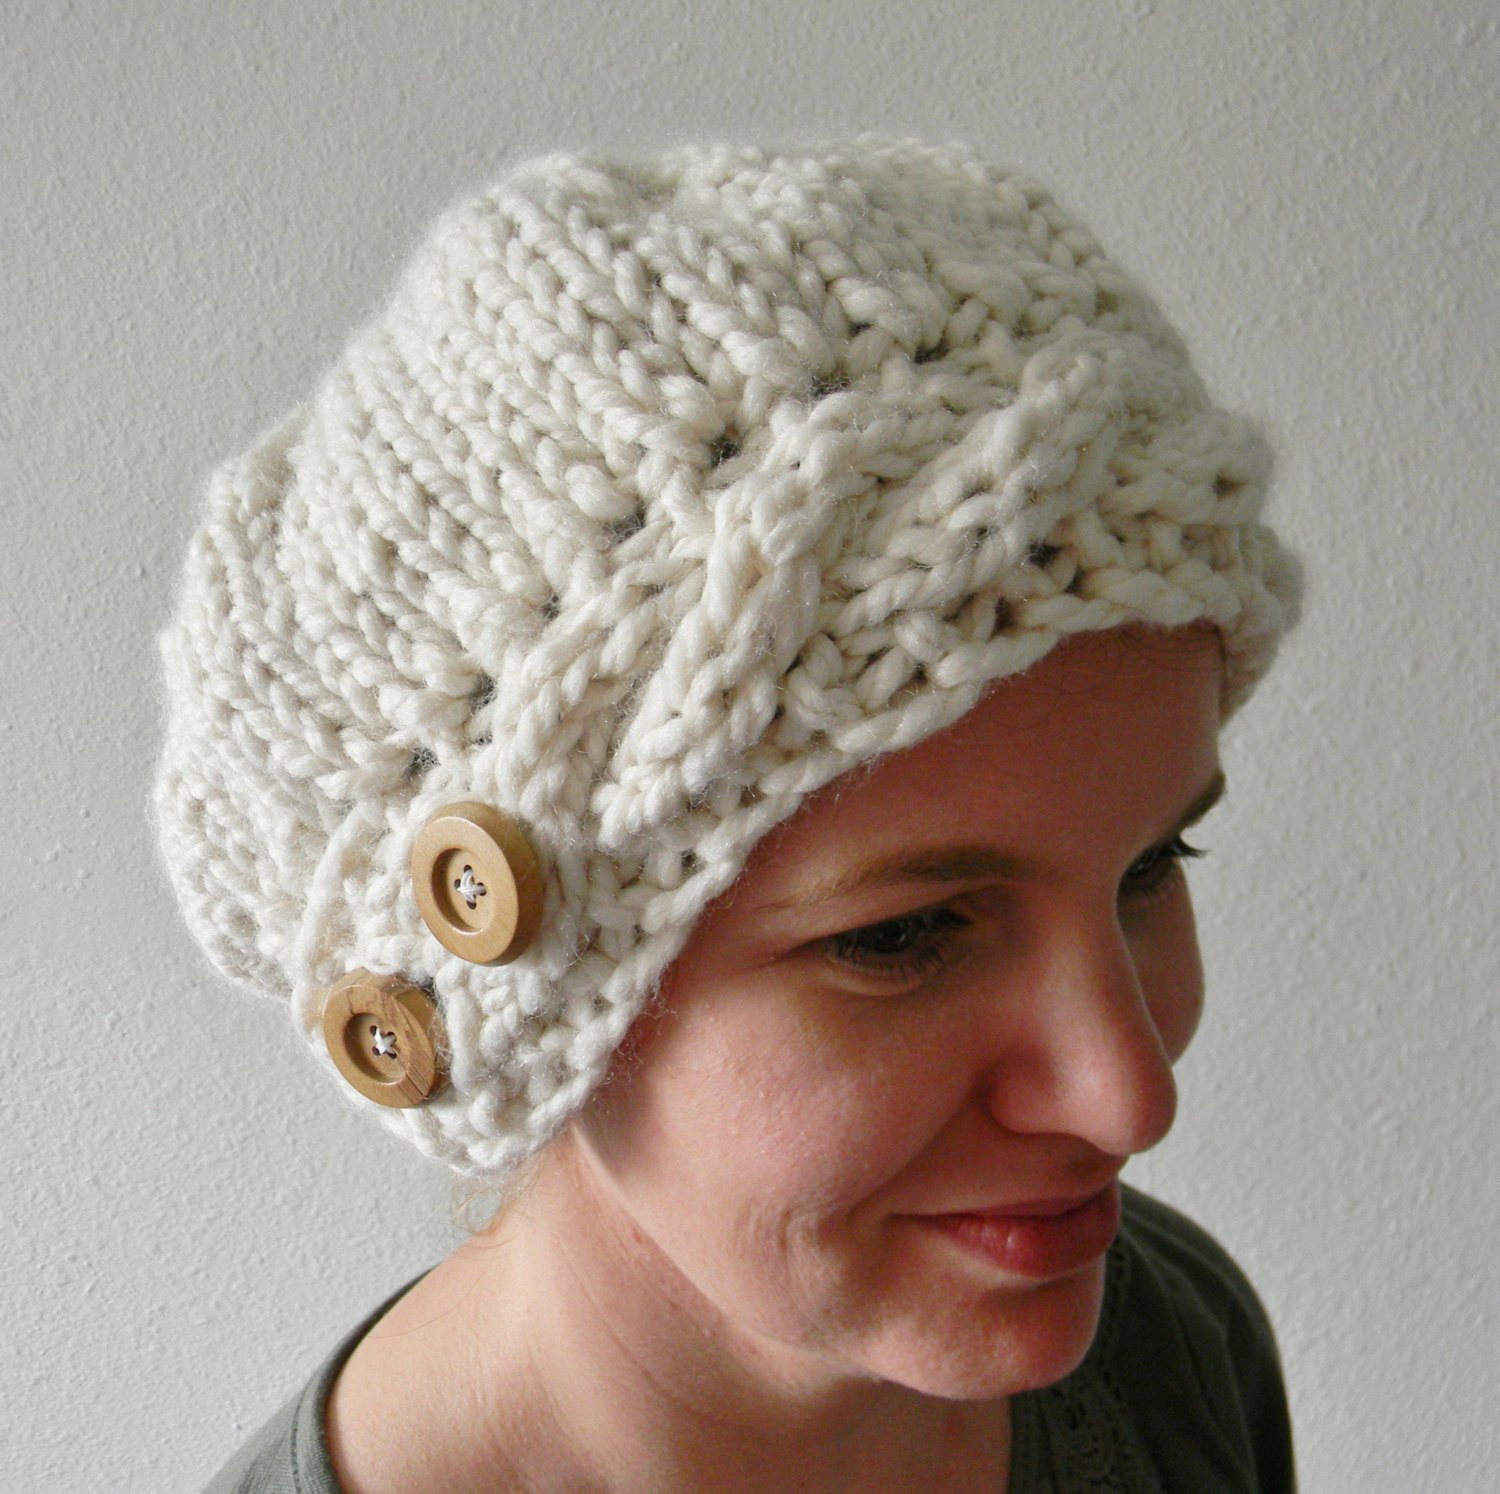 Inspirational Knitting Pattern Jenny Slouchy Knit Hat Pattern Slouchy Knit Slouchy Beanie Of Lovely 42 Images Knit Slouchy Beanie